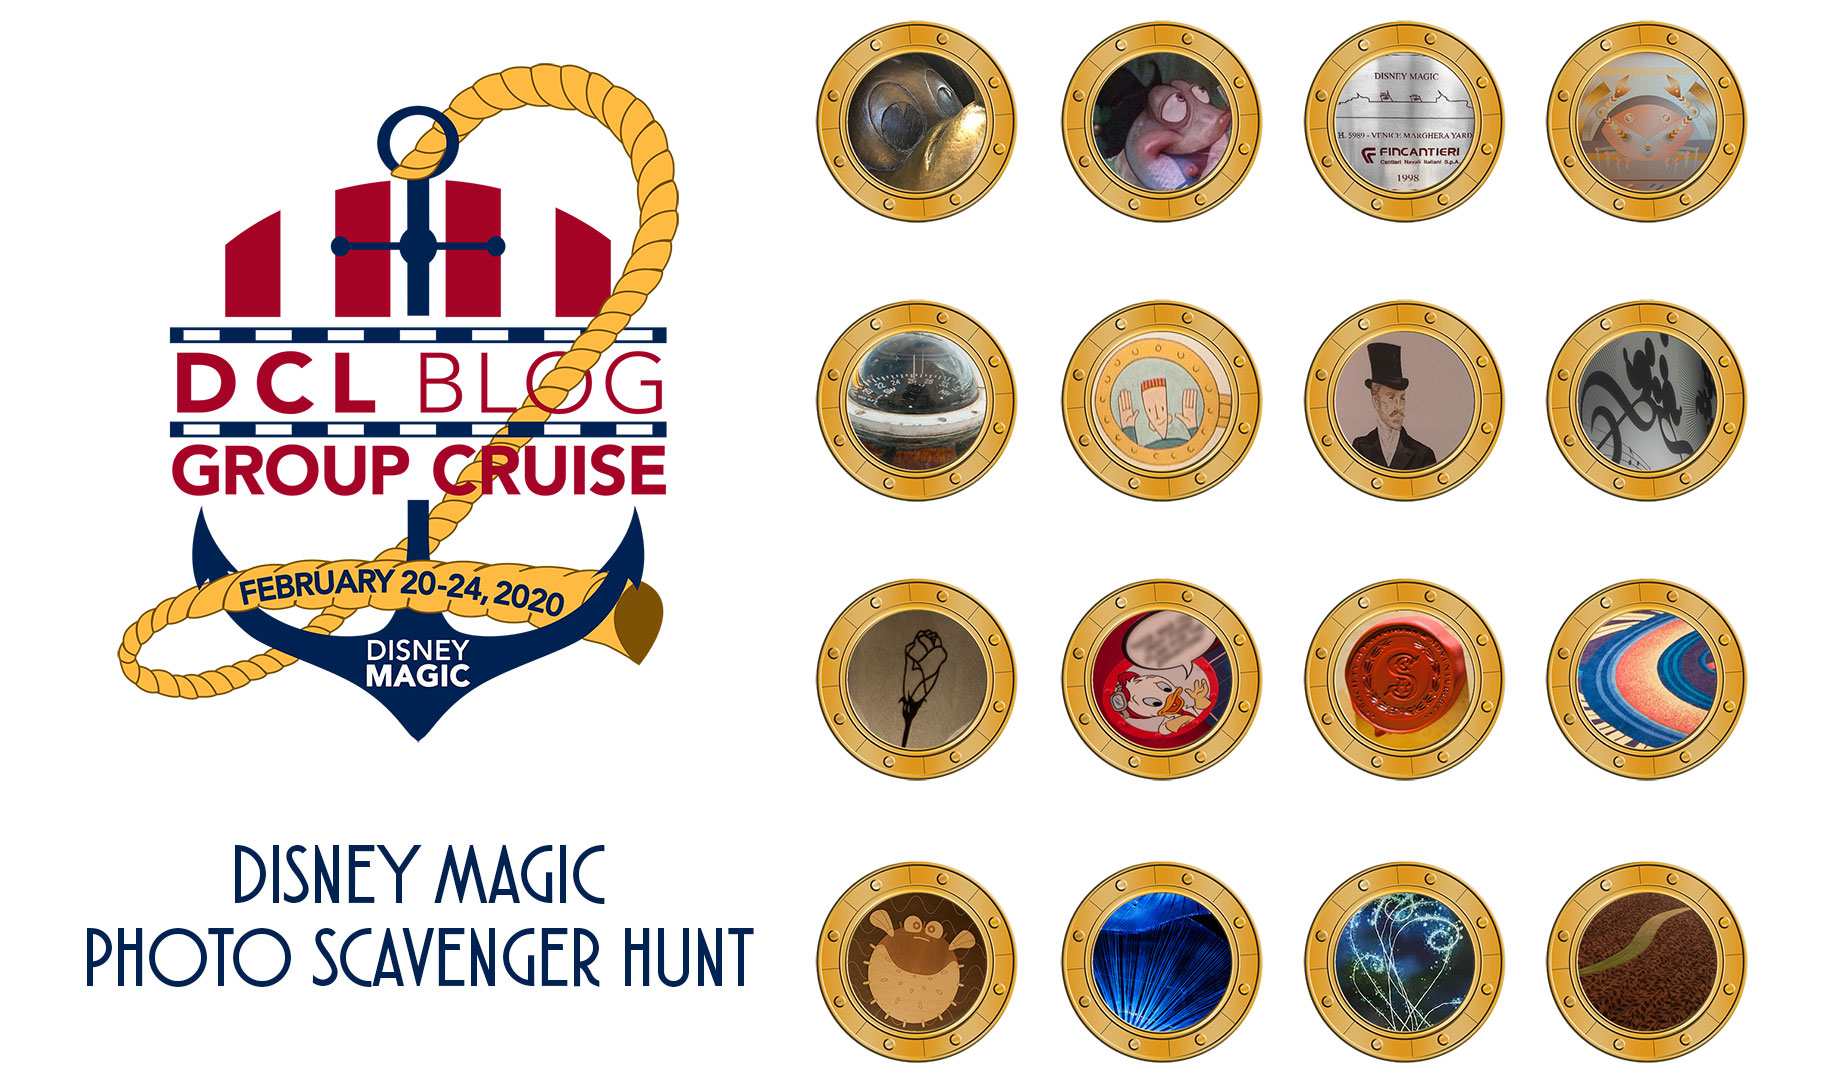 Disney Magic Photo Scavenger Hunt